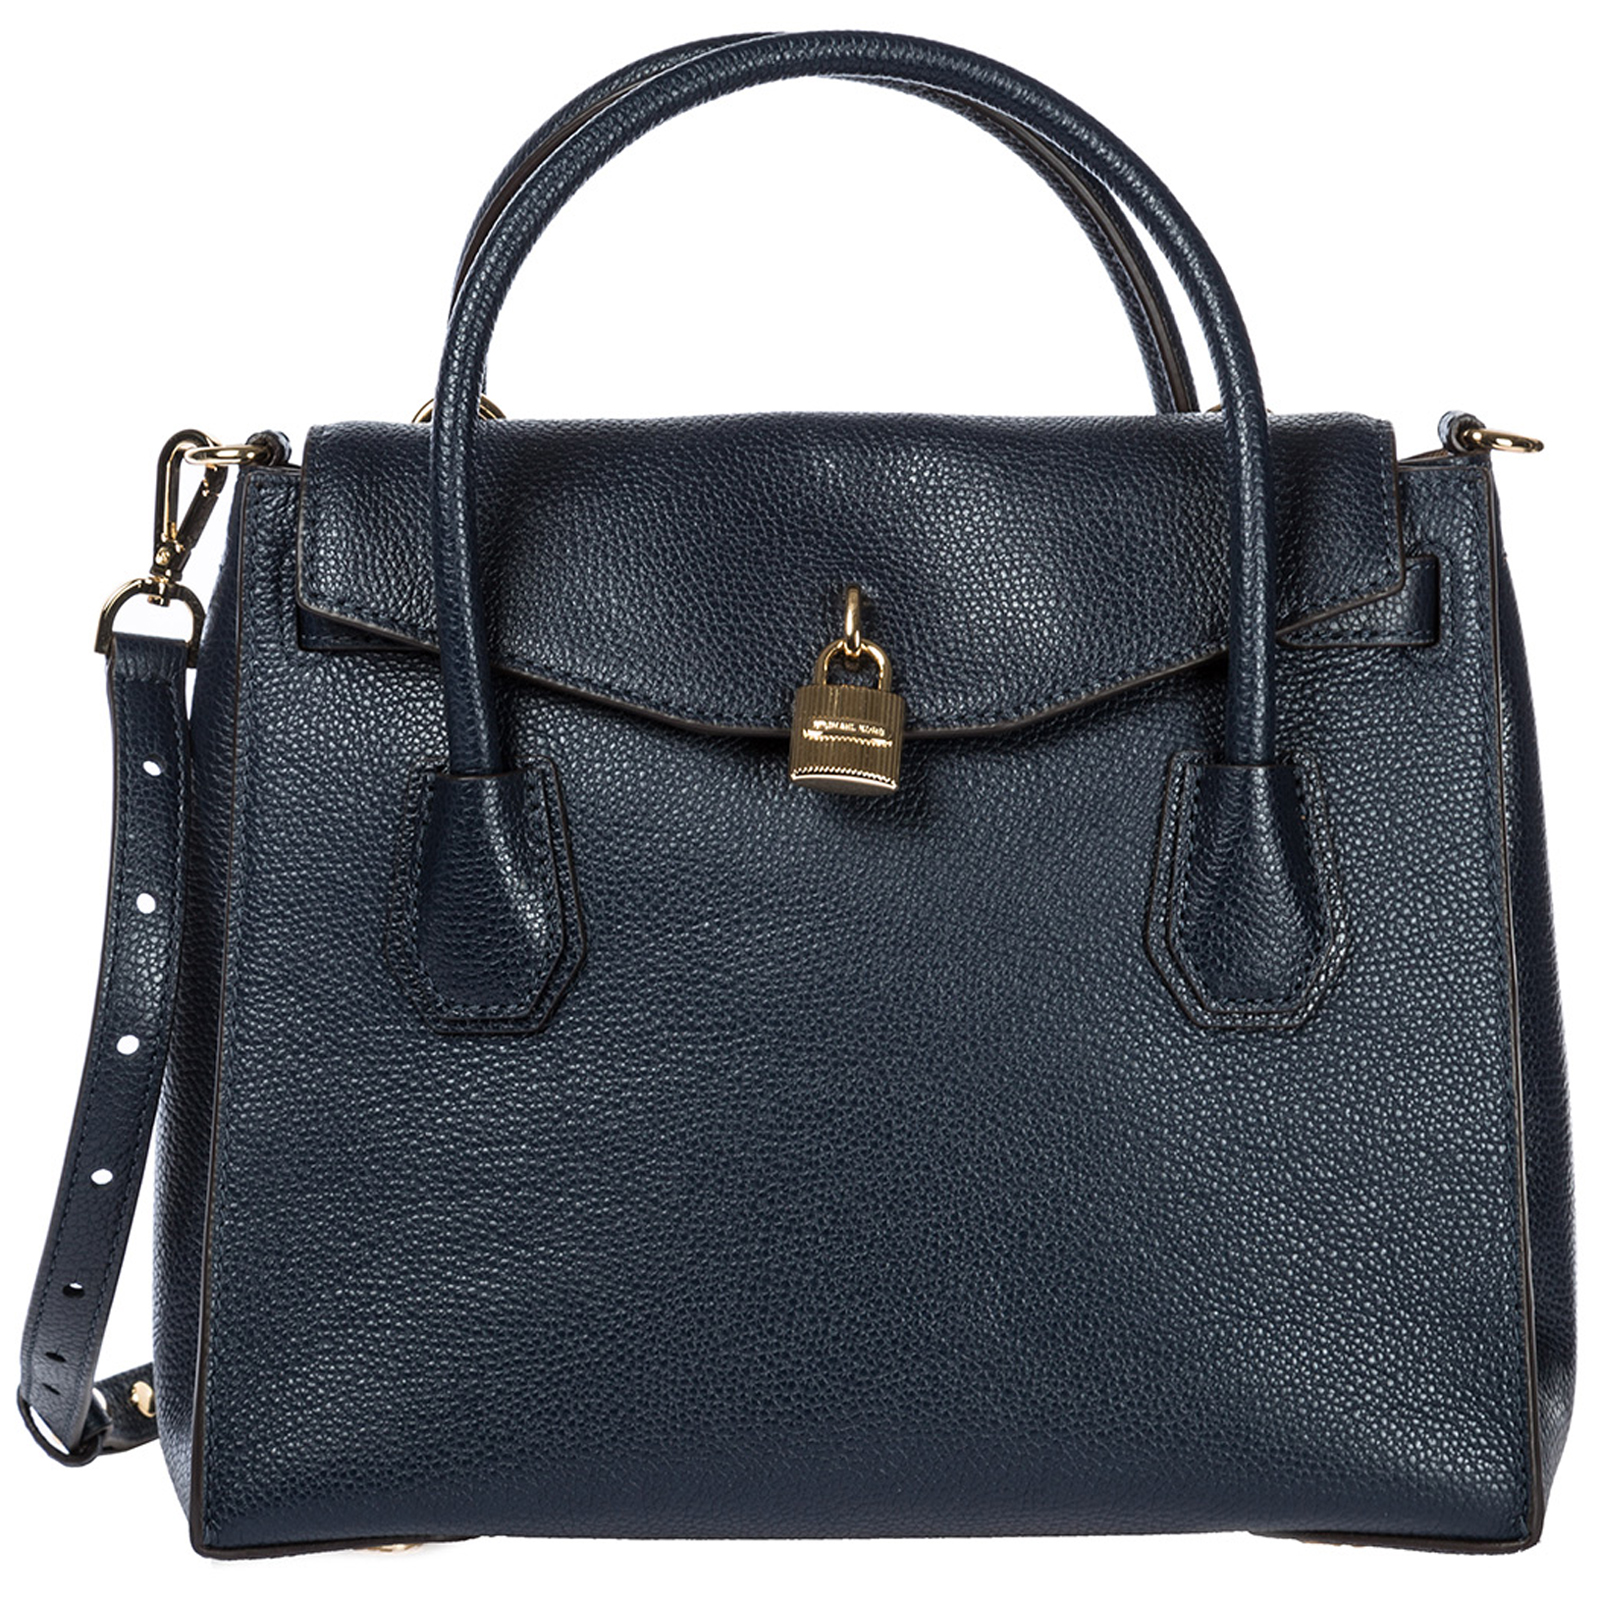 Borsa donna a mano shopping in pelle mercer